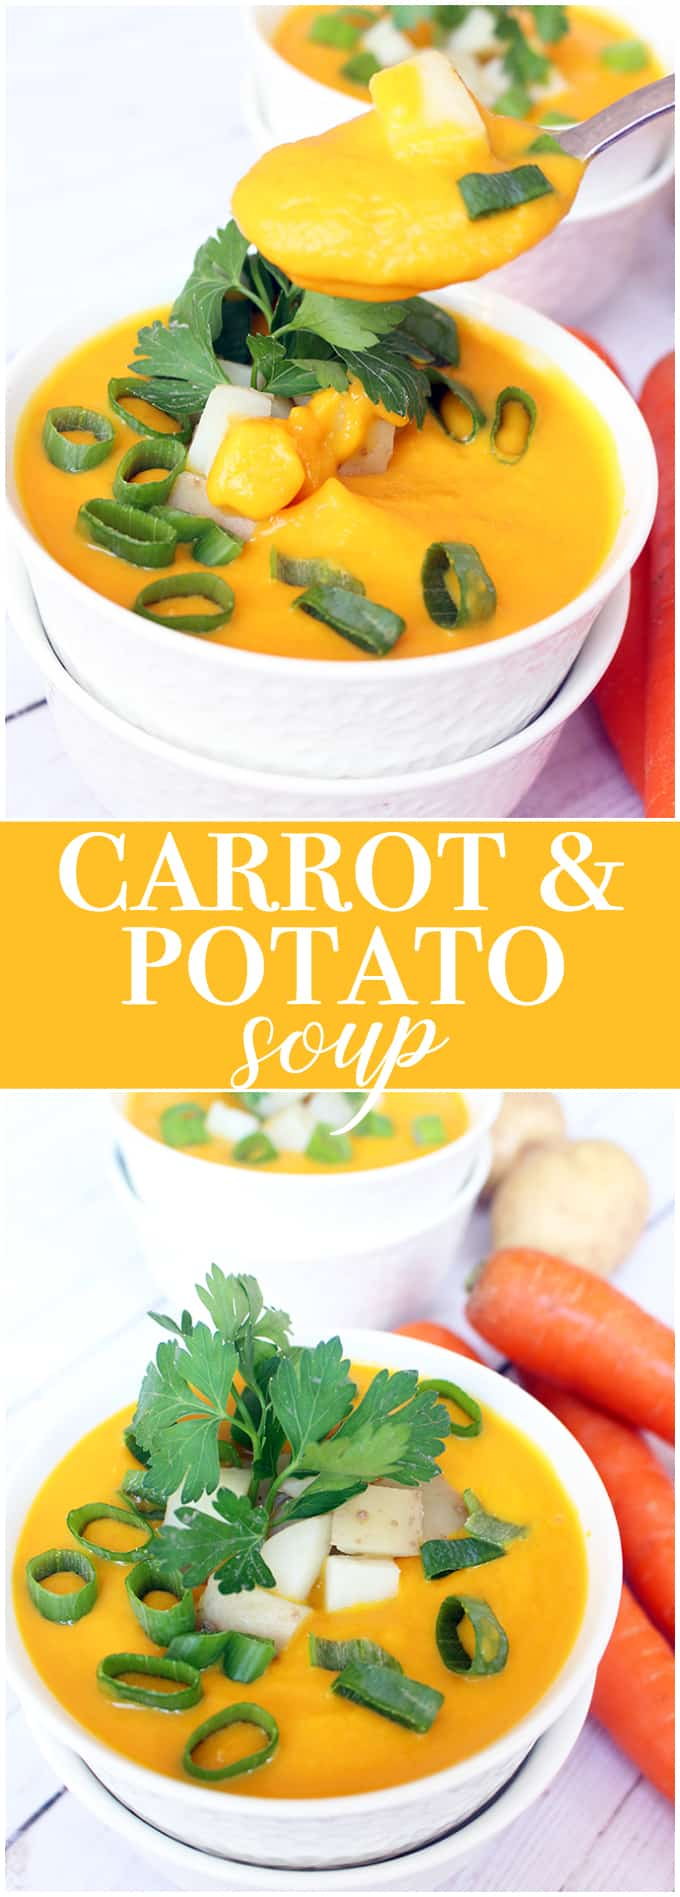 Carrot and Potato Soup - Delicious, creamy and filling! This soup is for all you veggie lovers.